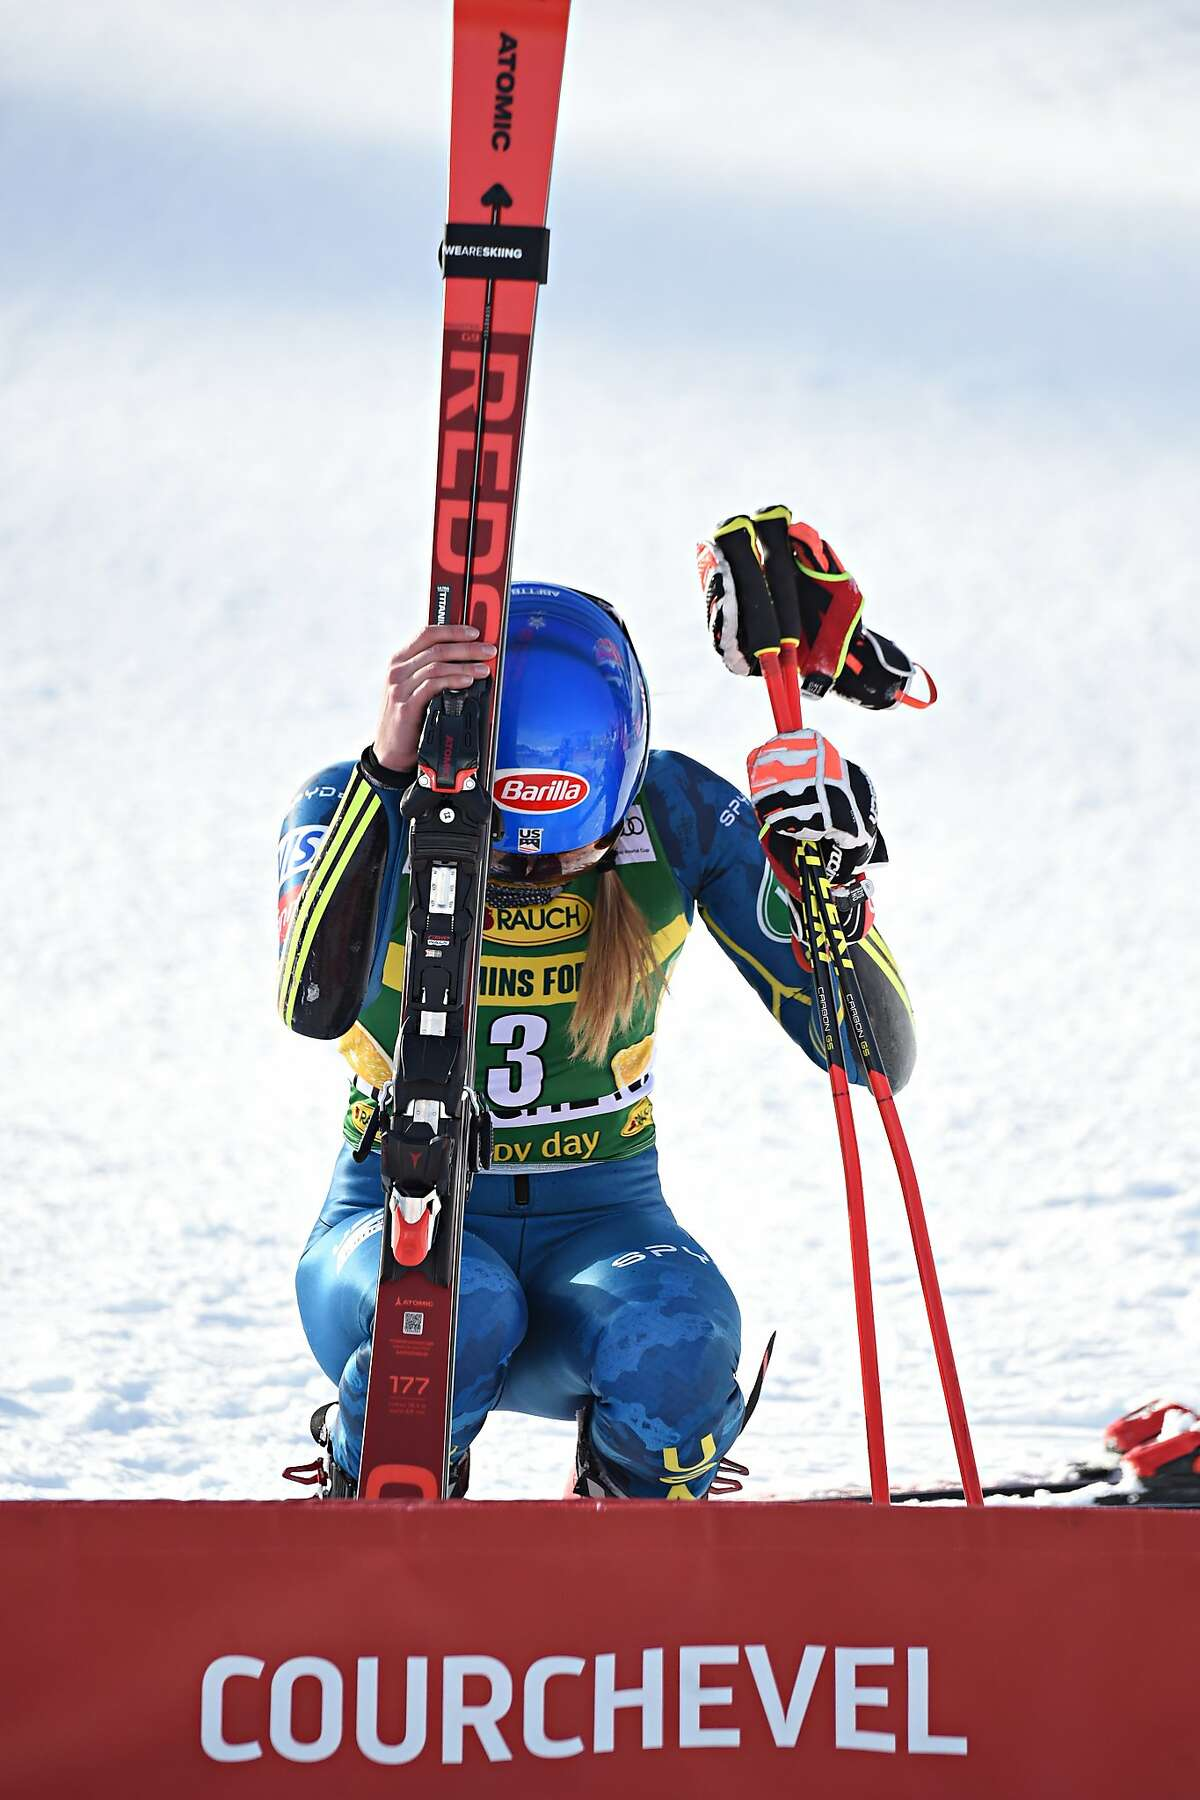 COURCHEVEL, FRANCE - DECEMBER 14: Mikaela Shiffrin of USA takes 1st place during the Audi FIS Alpine Ski World Cup Giant Slalom on December 14, 2020 in Courchevel, France. (Photo by Agence Zoom/Getty Images)